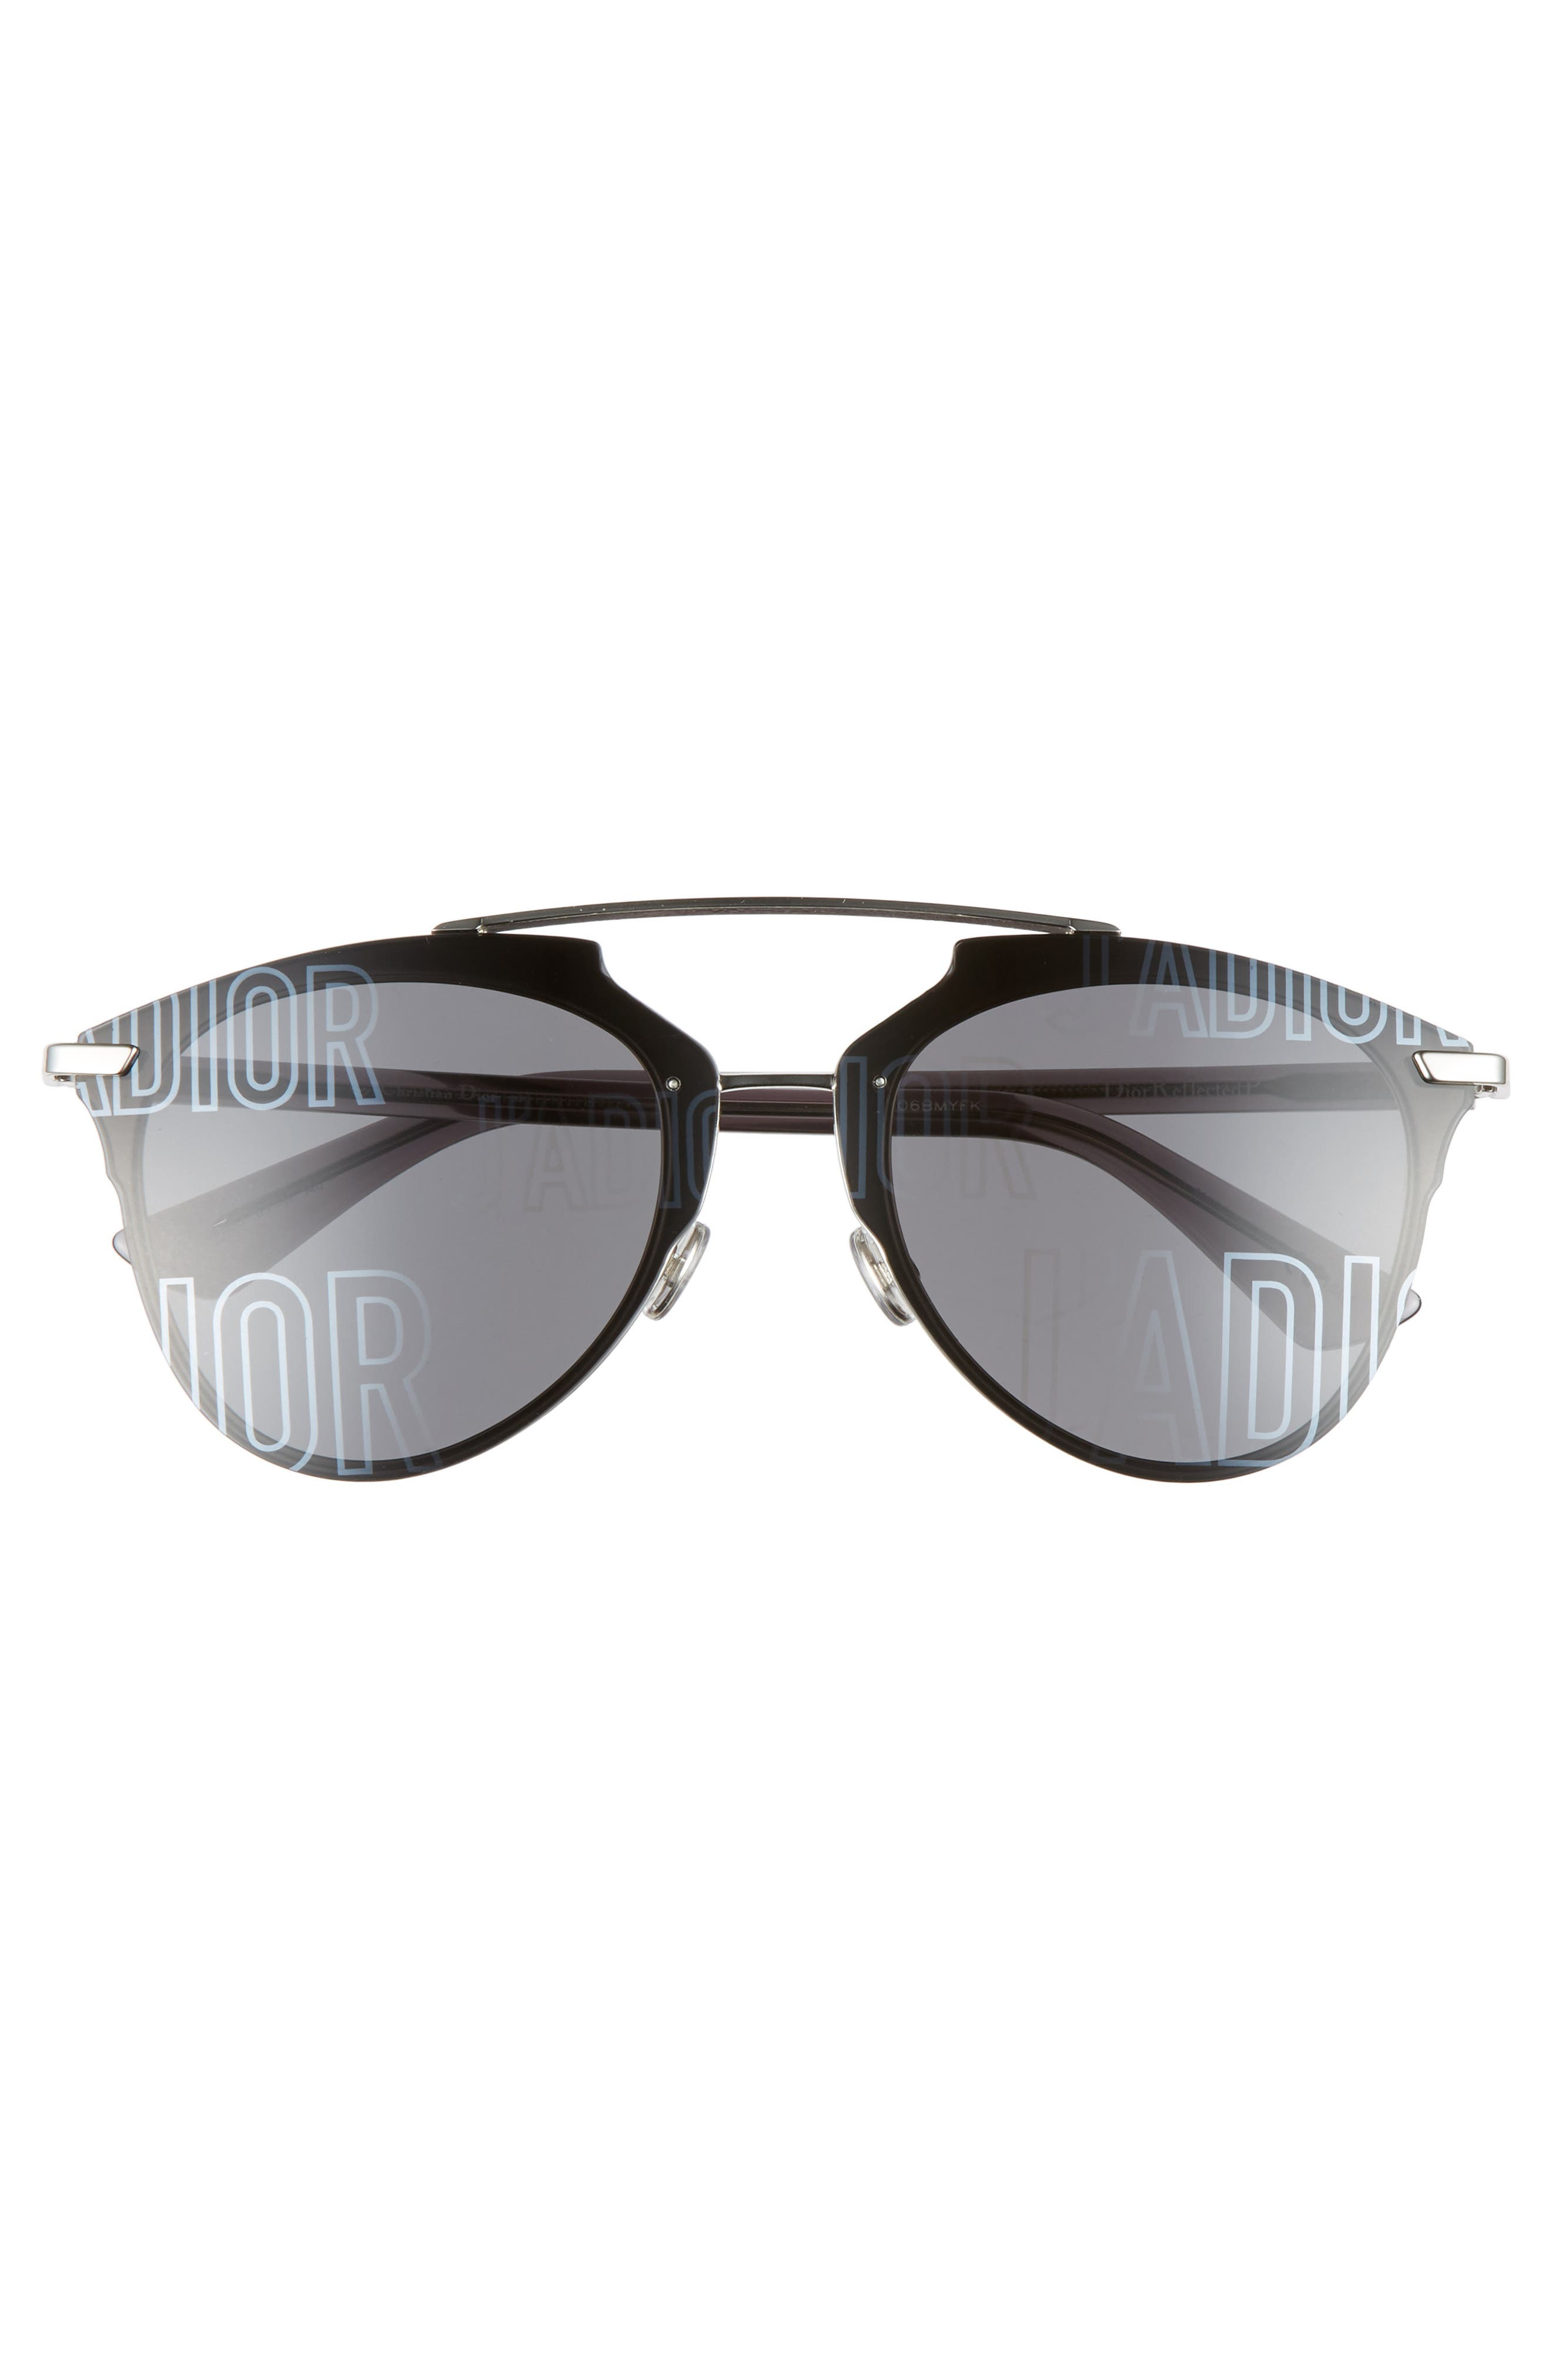 Reflected Prism 63mm Oversize Mirrored Brow Bar Sunglasses,                             Alternate thumbnail 3, color,                             047